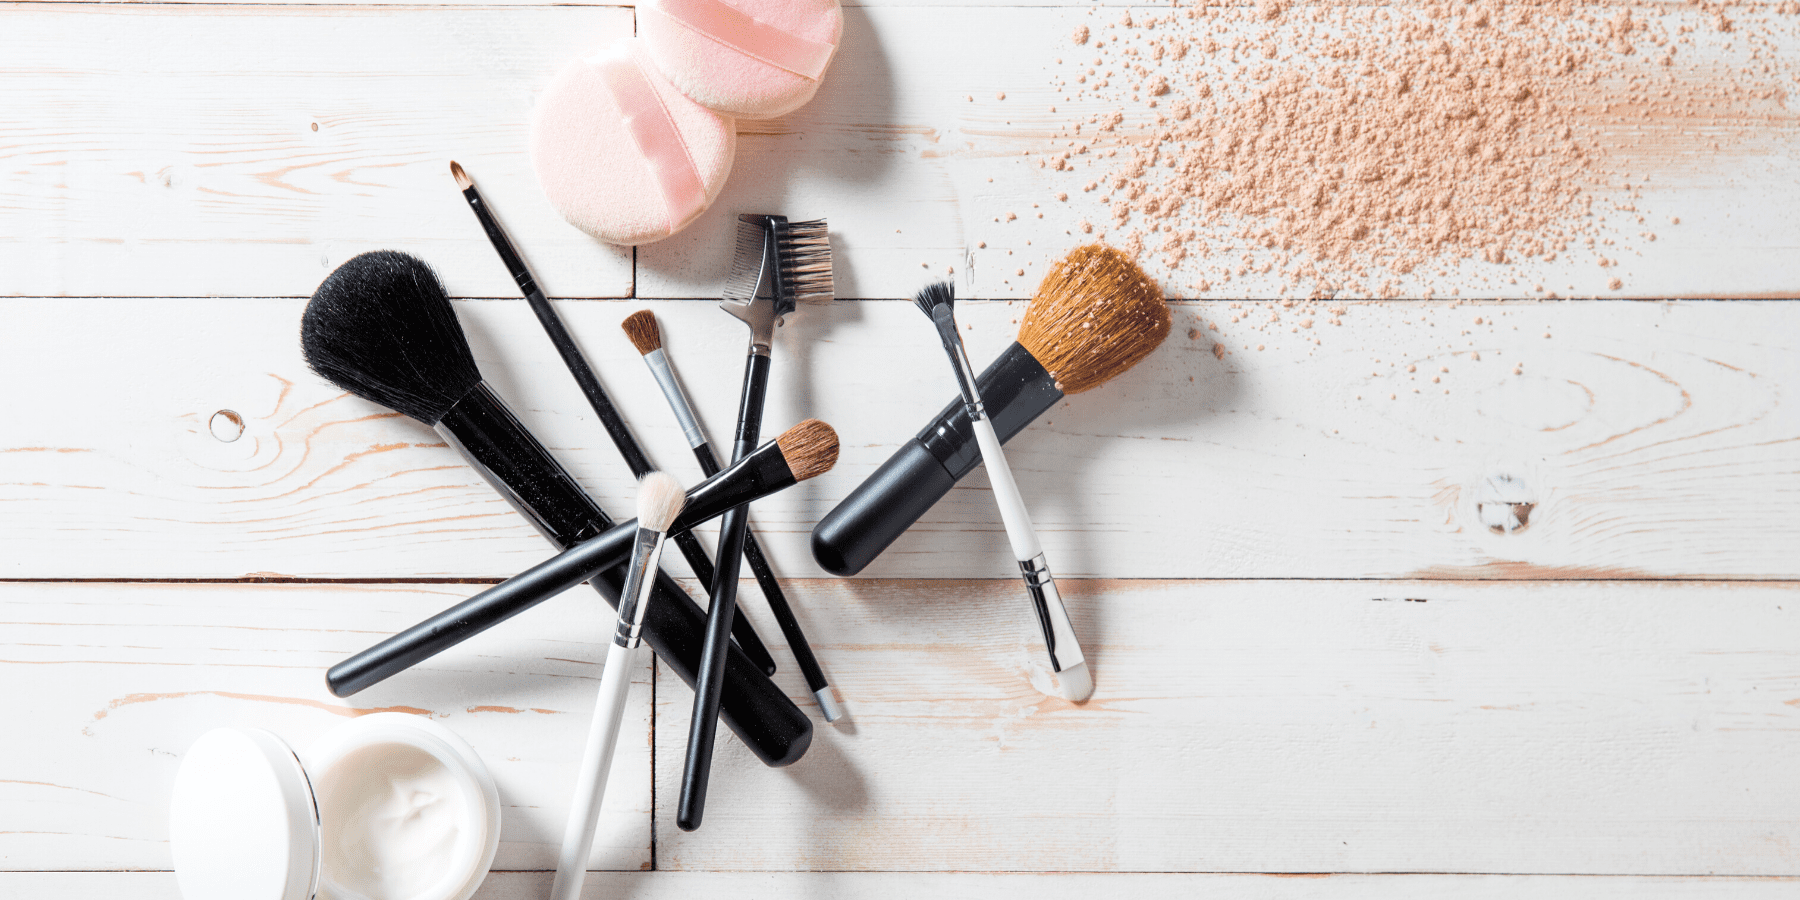 How to Make Your Own Natural Vegan Make-Up!